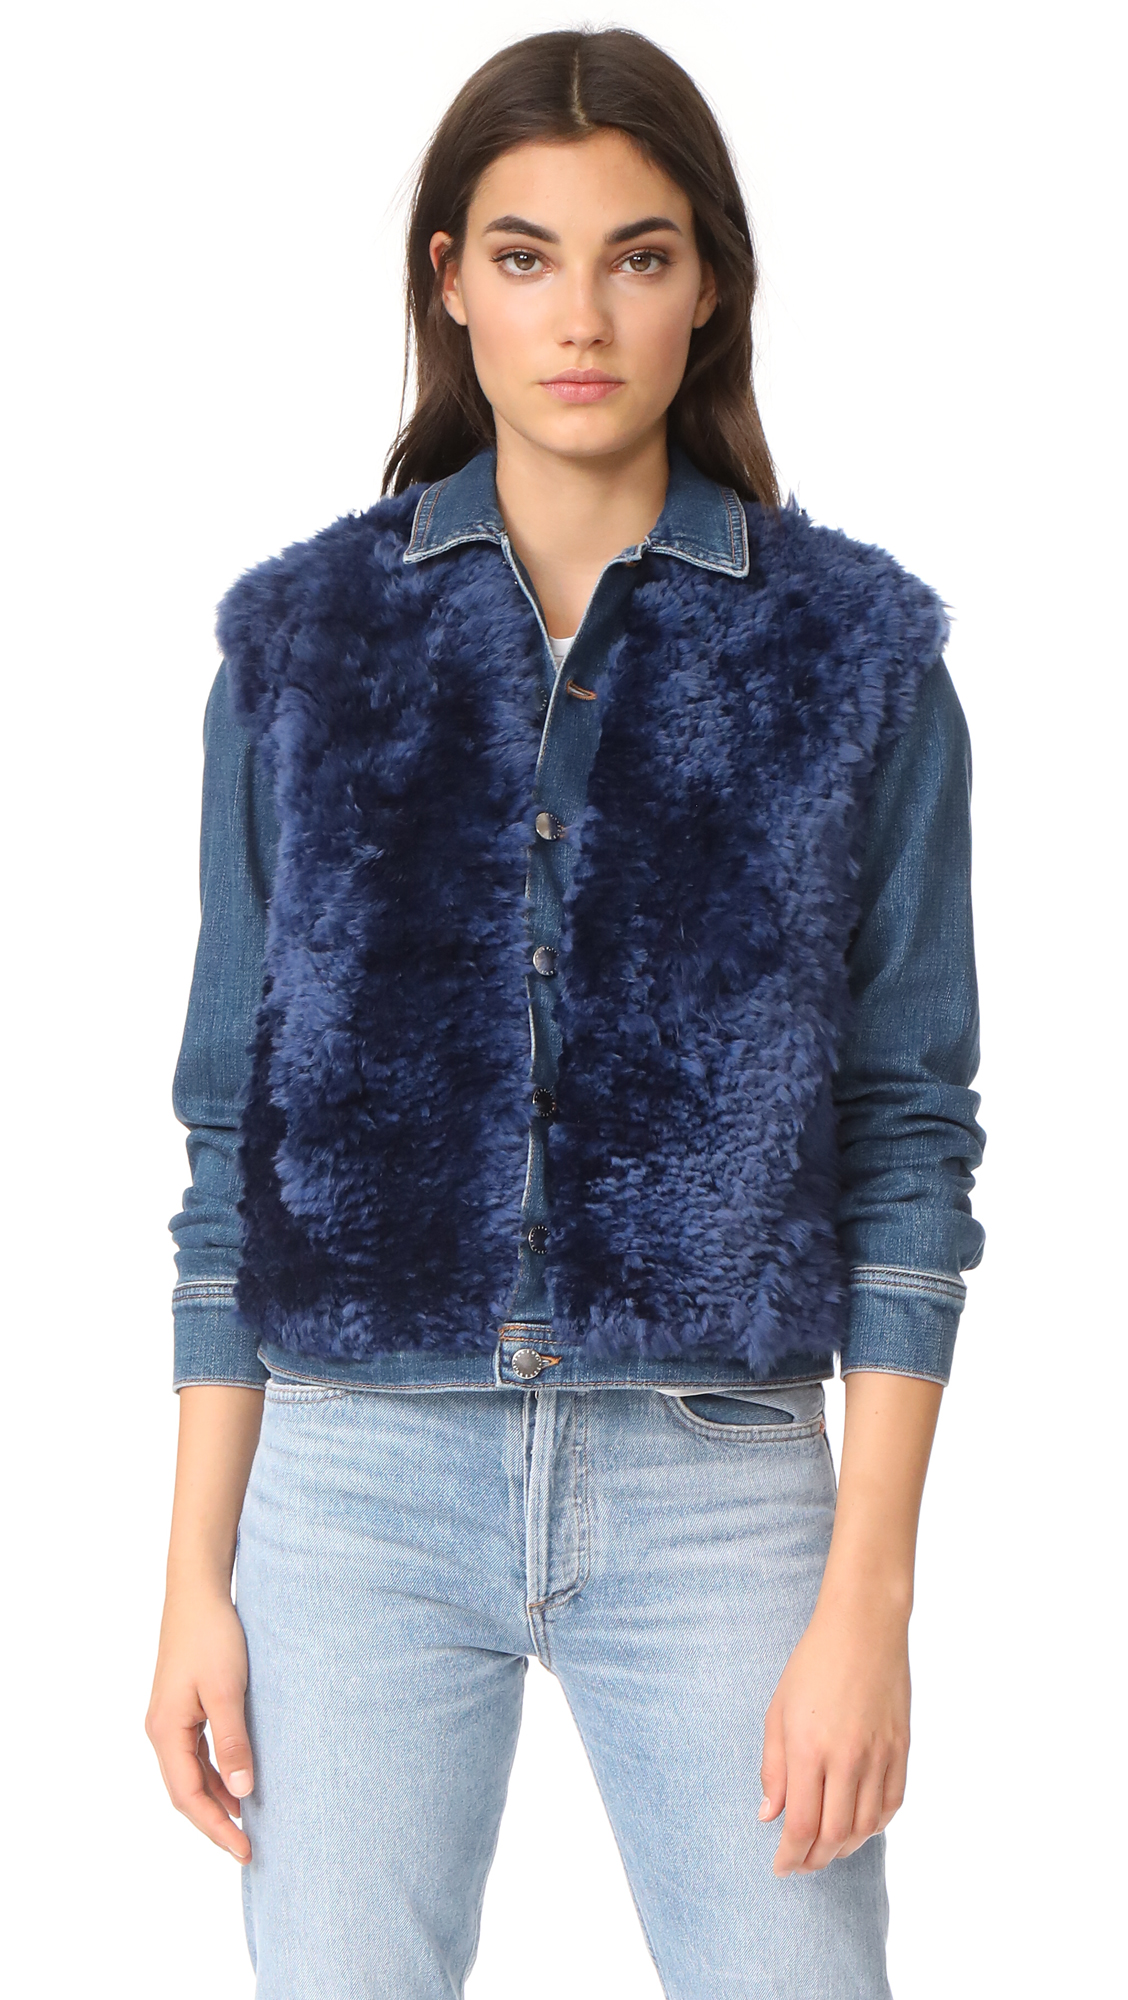 LAGENCE Carolina Shearling Jacket - Authentique Distressed